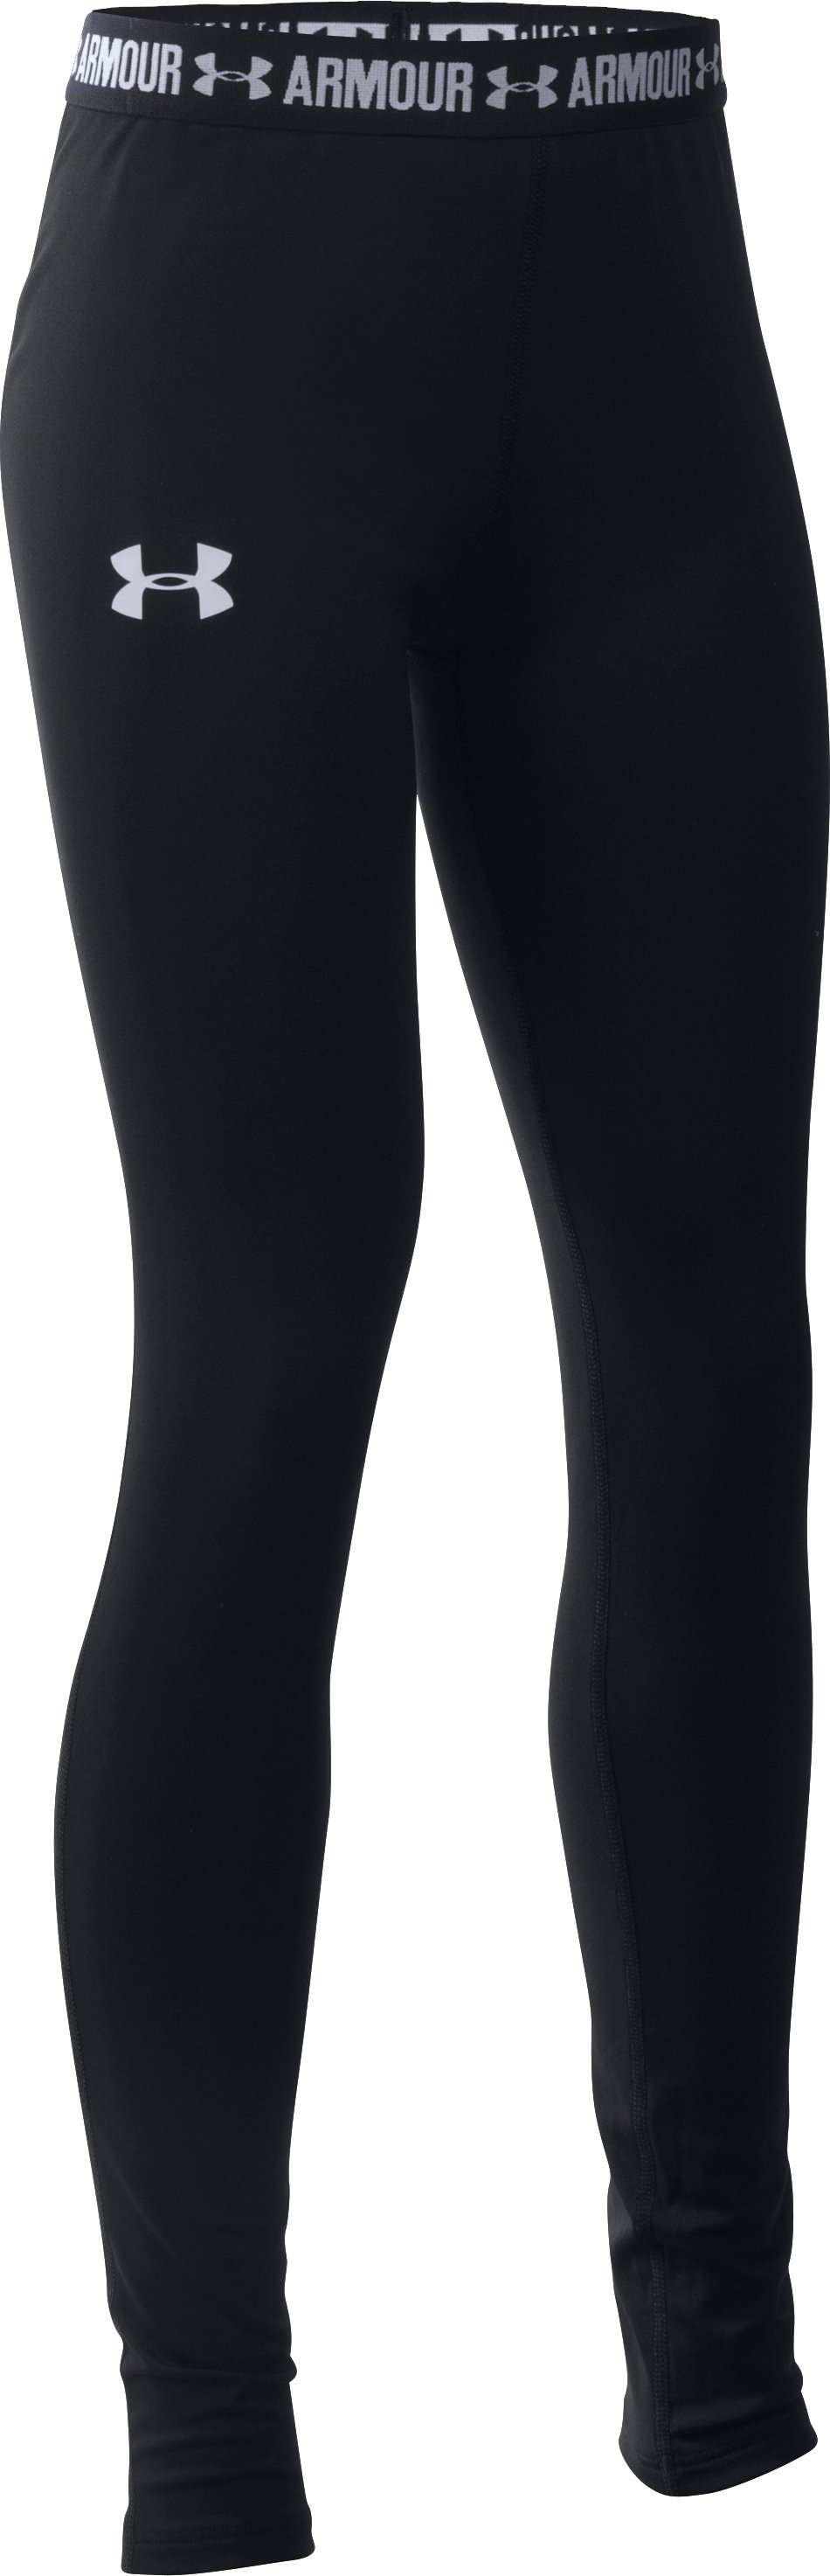 Girls' HeatGear® Armour Legging, Black